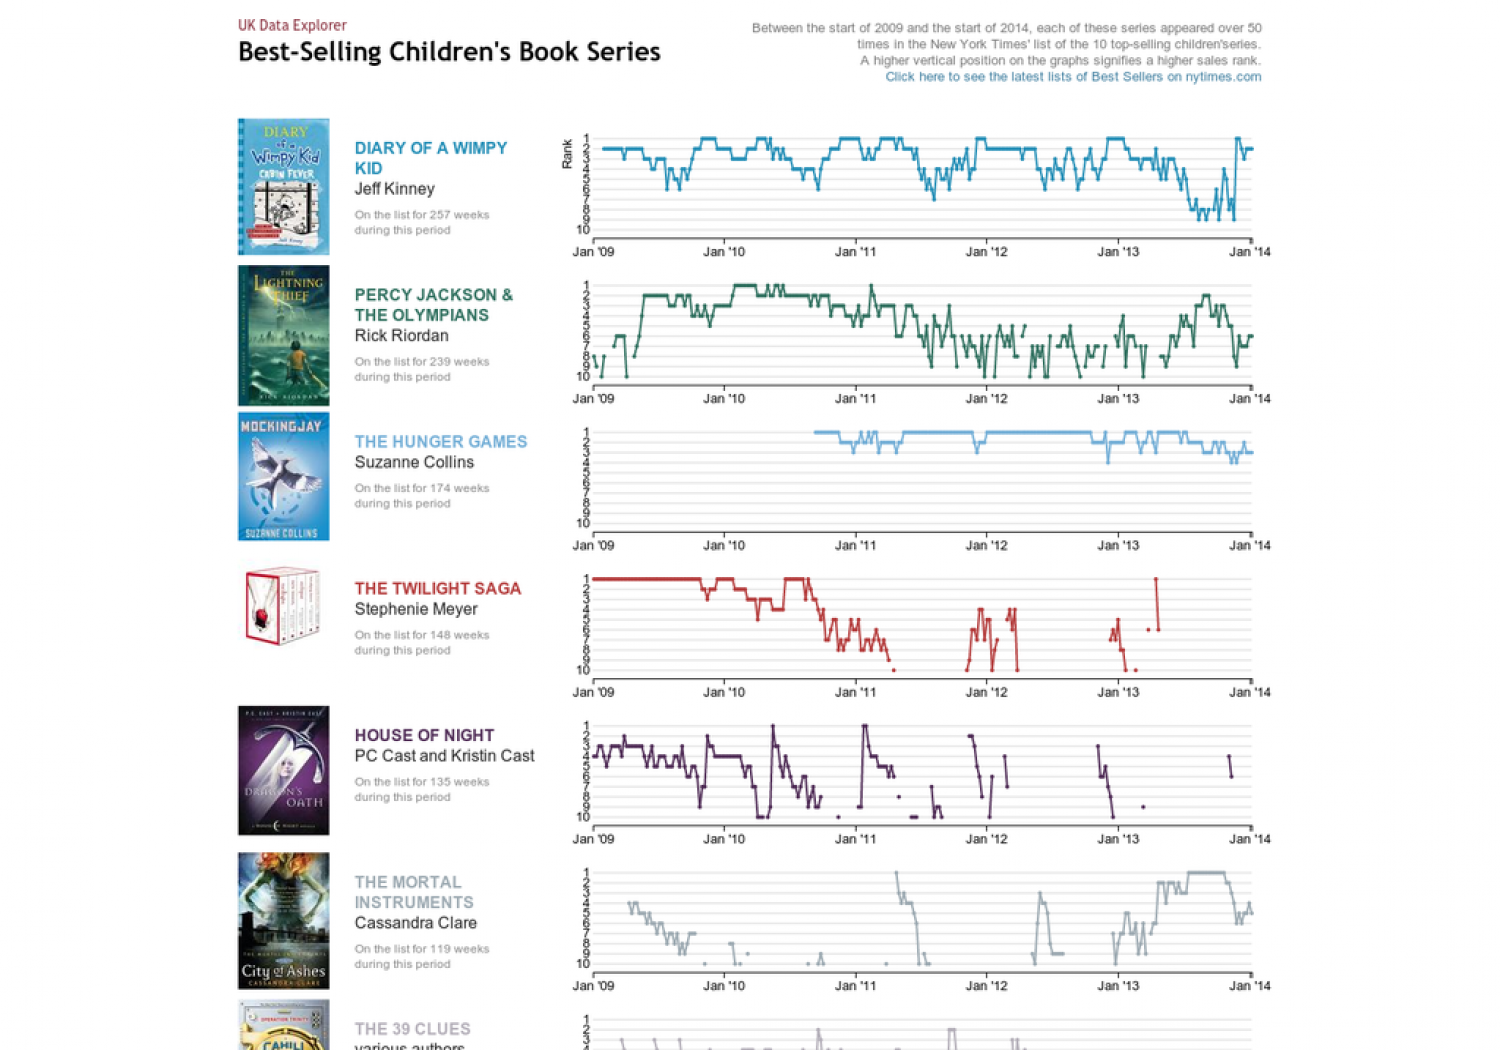 Bestselling Children's Book Series Infographic